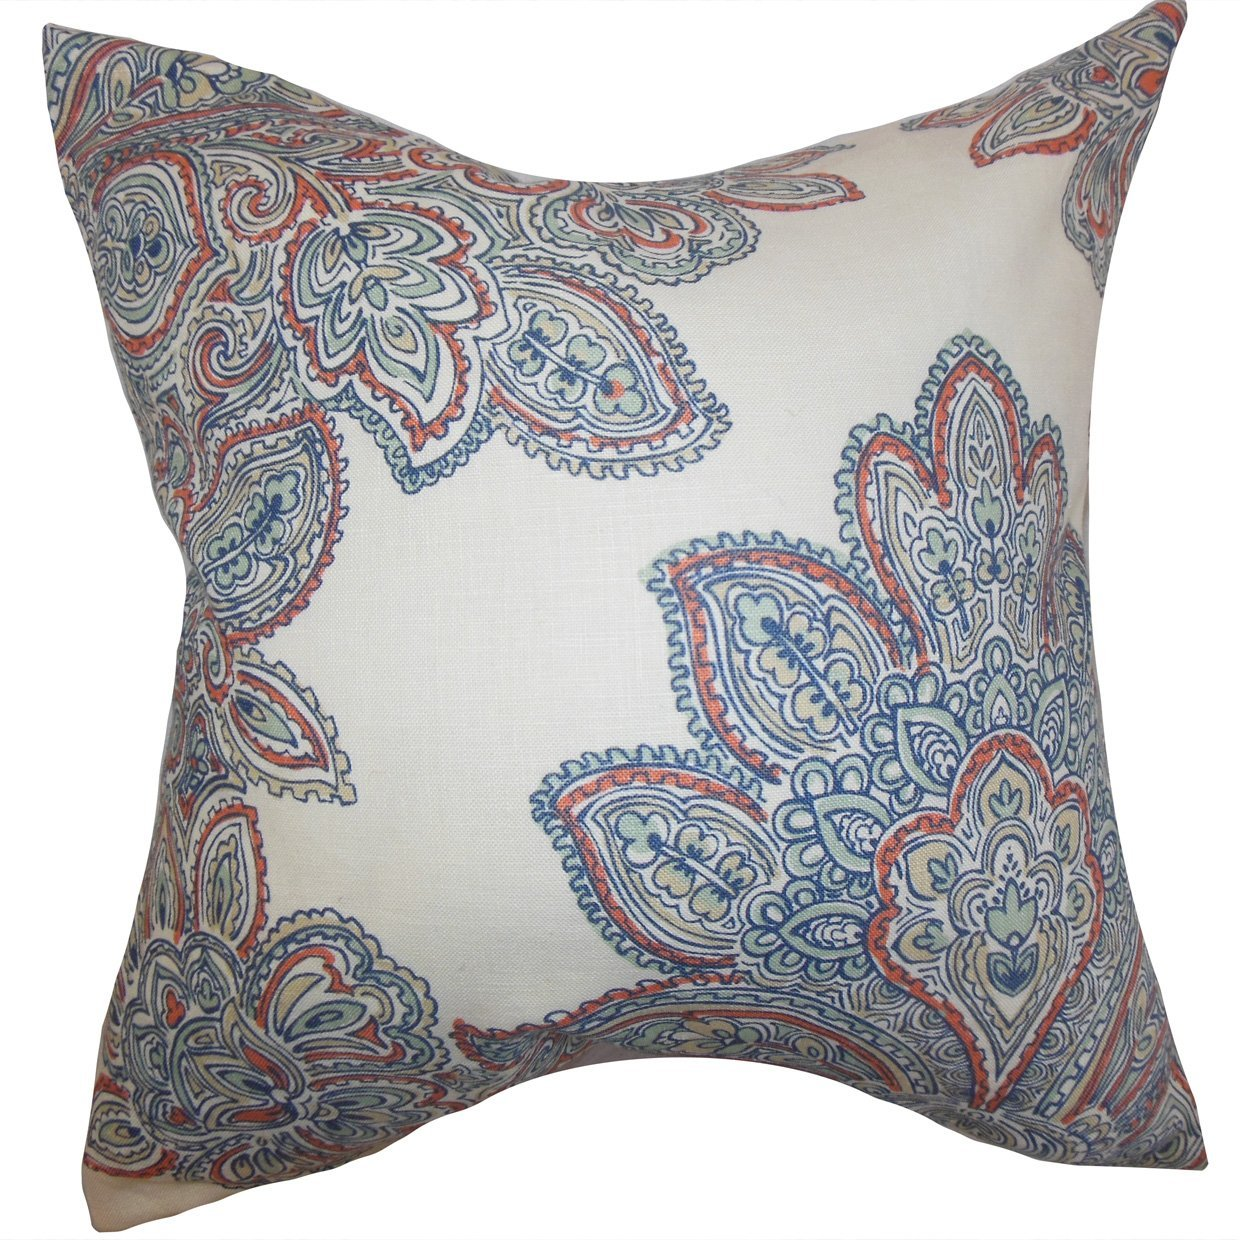 The Pillow Collection Haldis Floral Bedding Sham Blue Standard//20 x 26